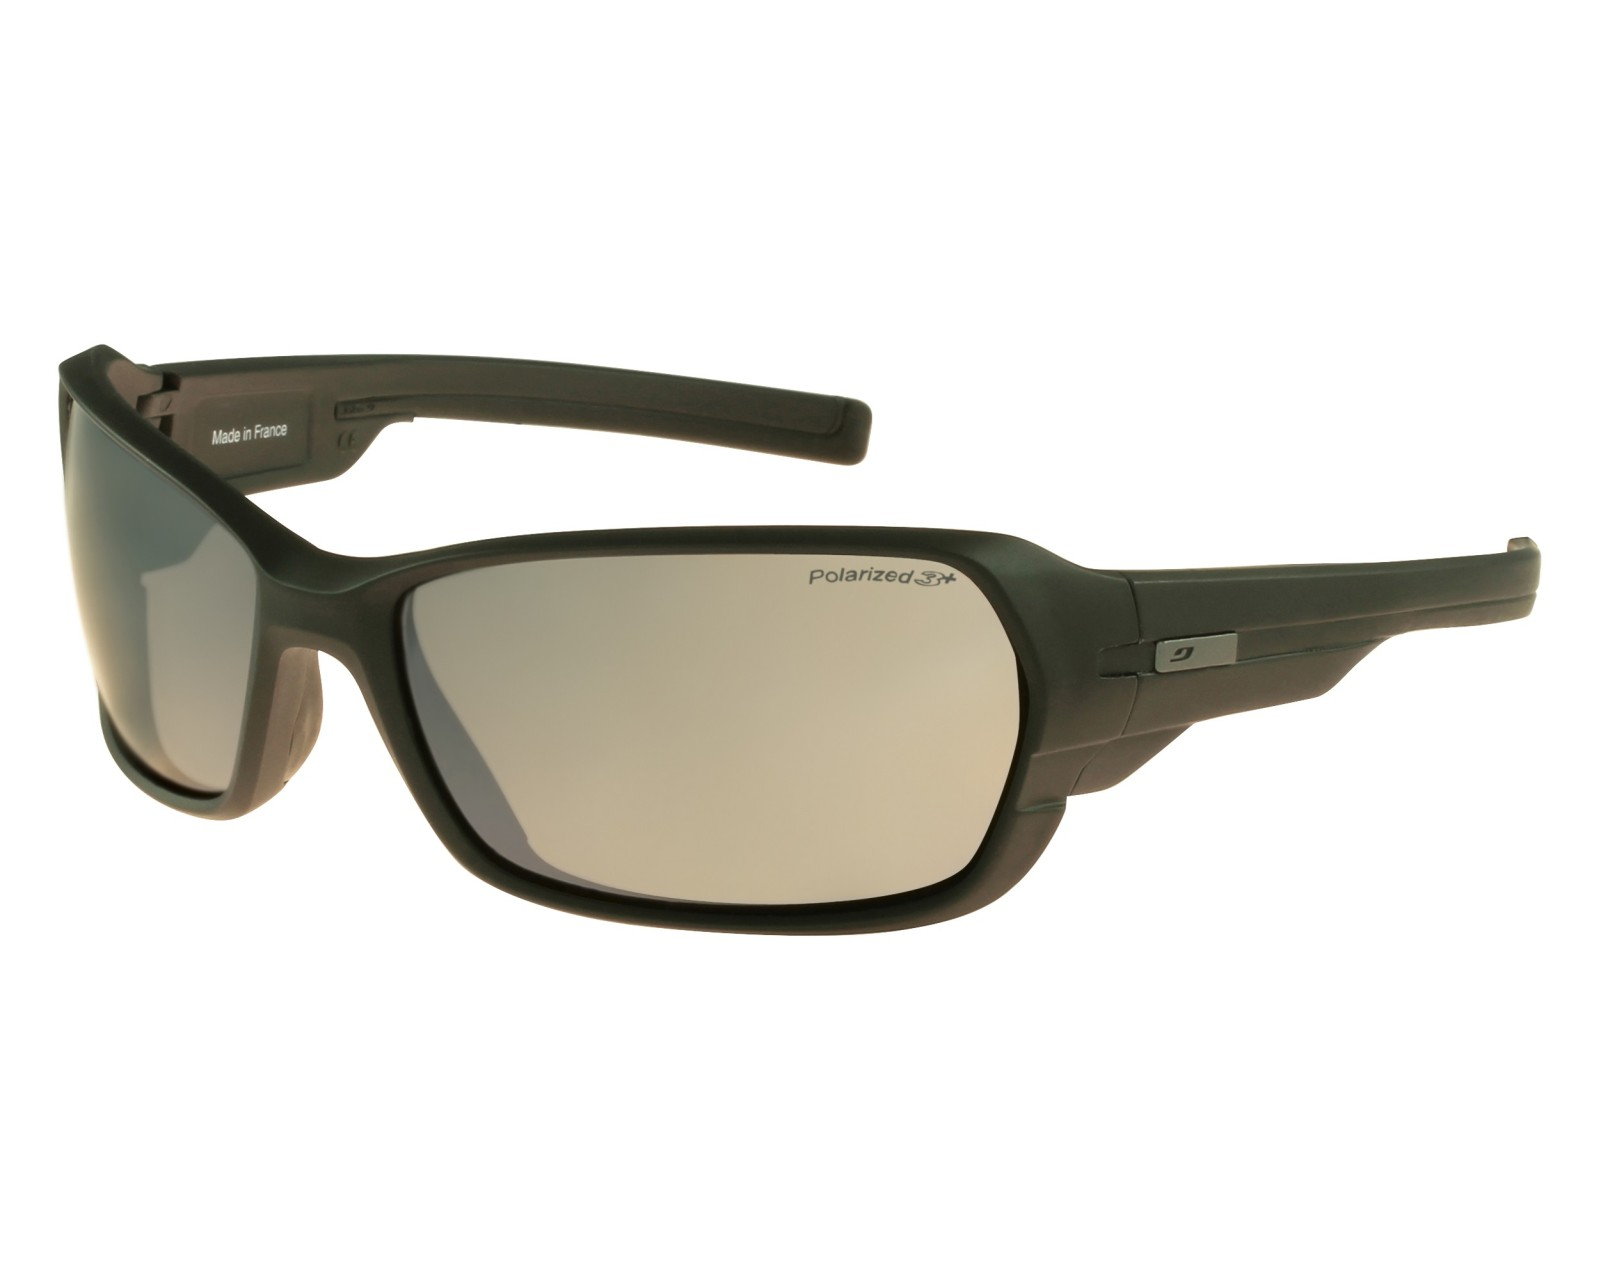 999cbead4fb6 Sunglasses Julbo J474 9114 - Black front view